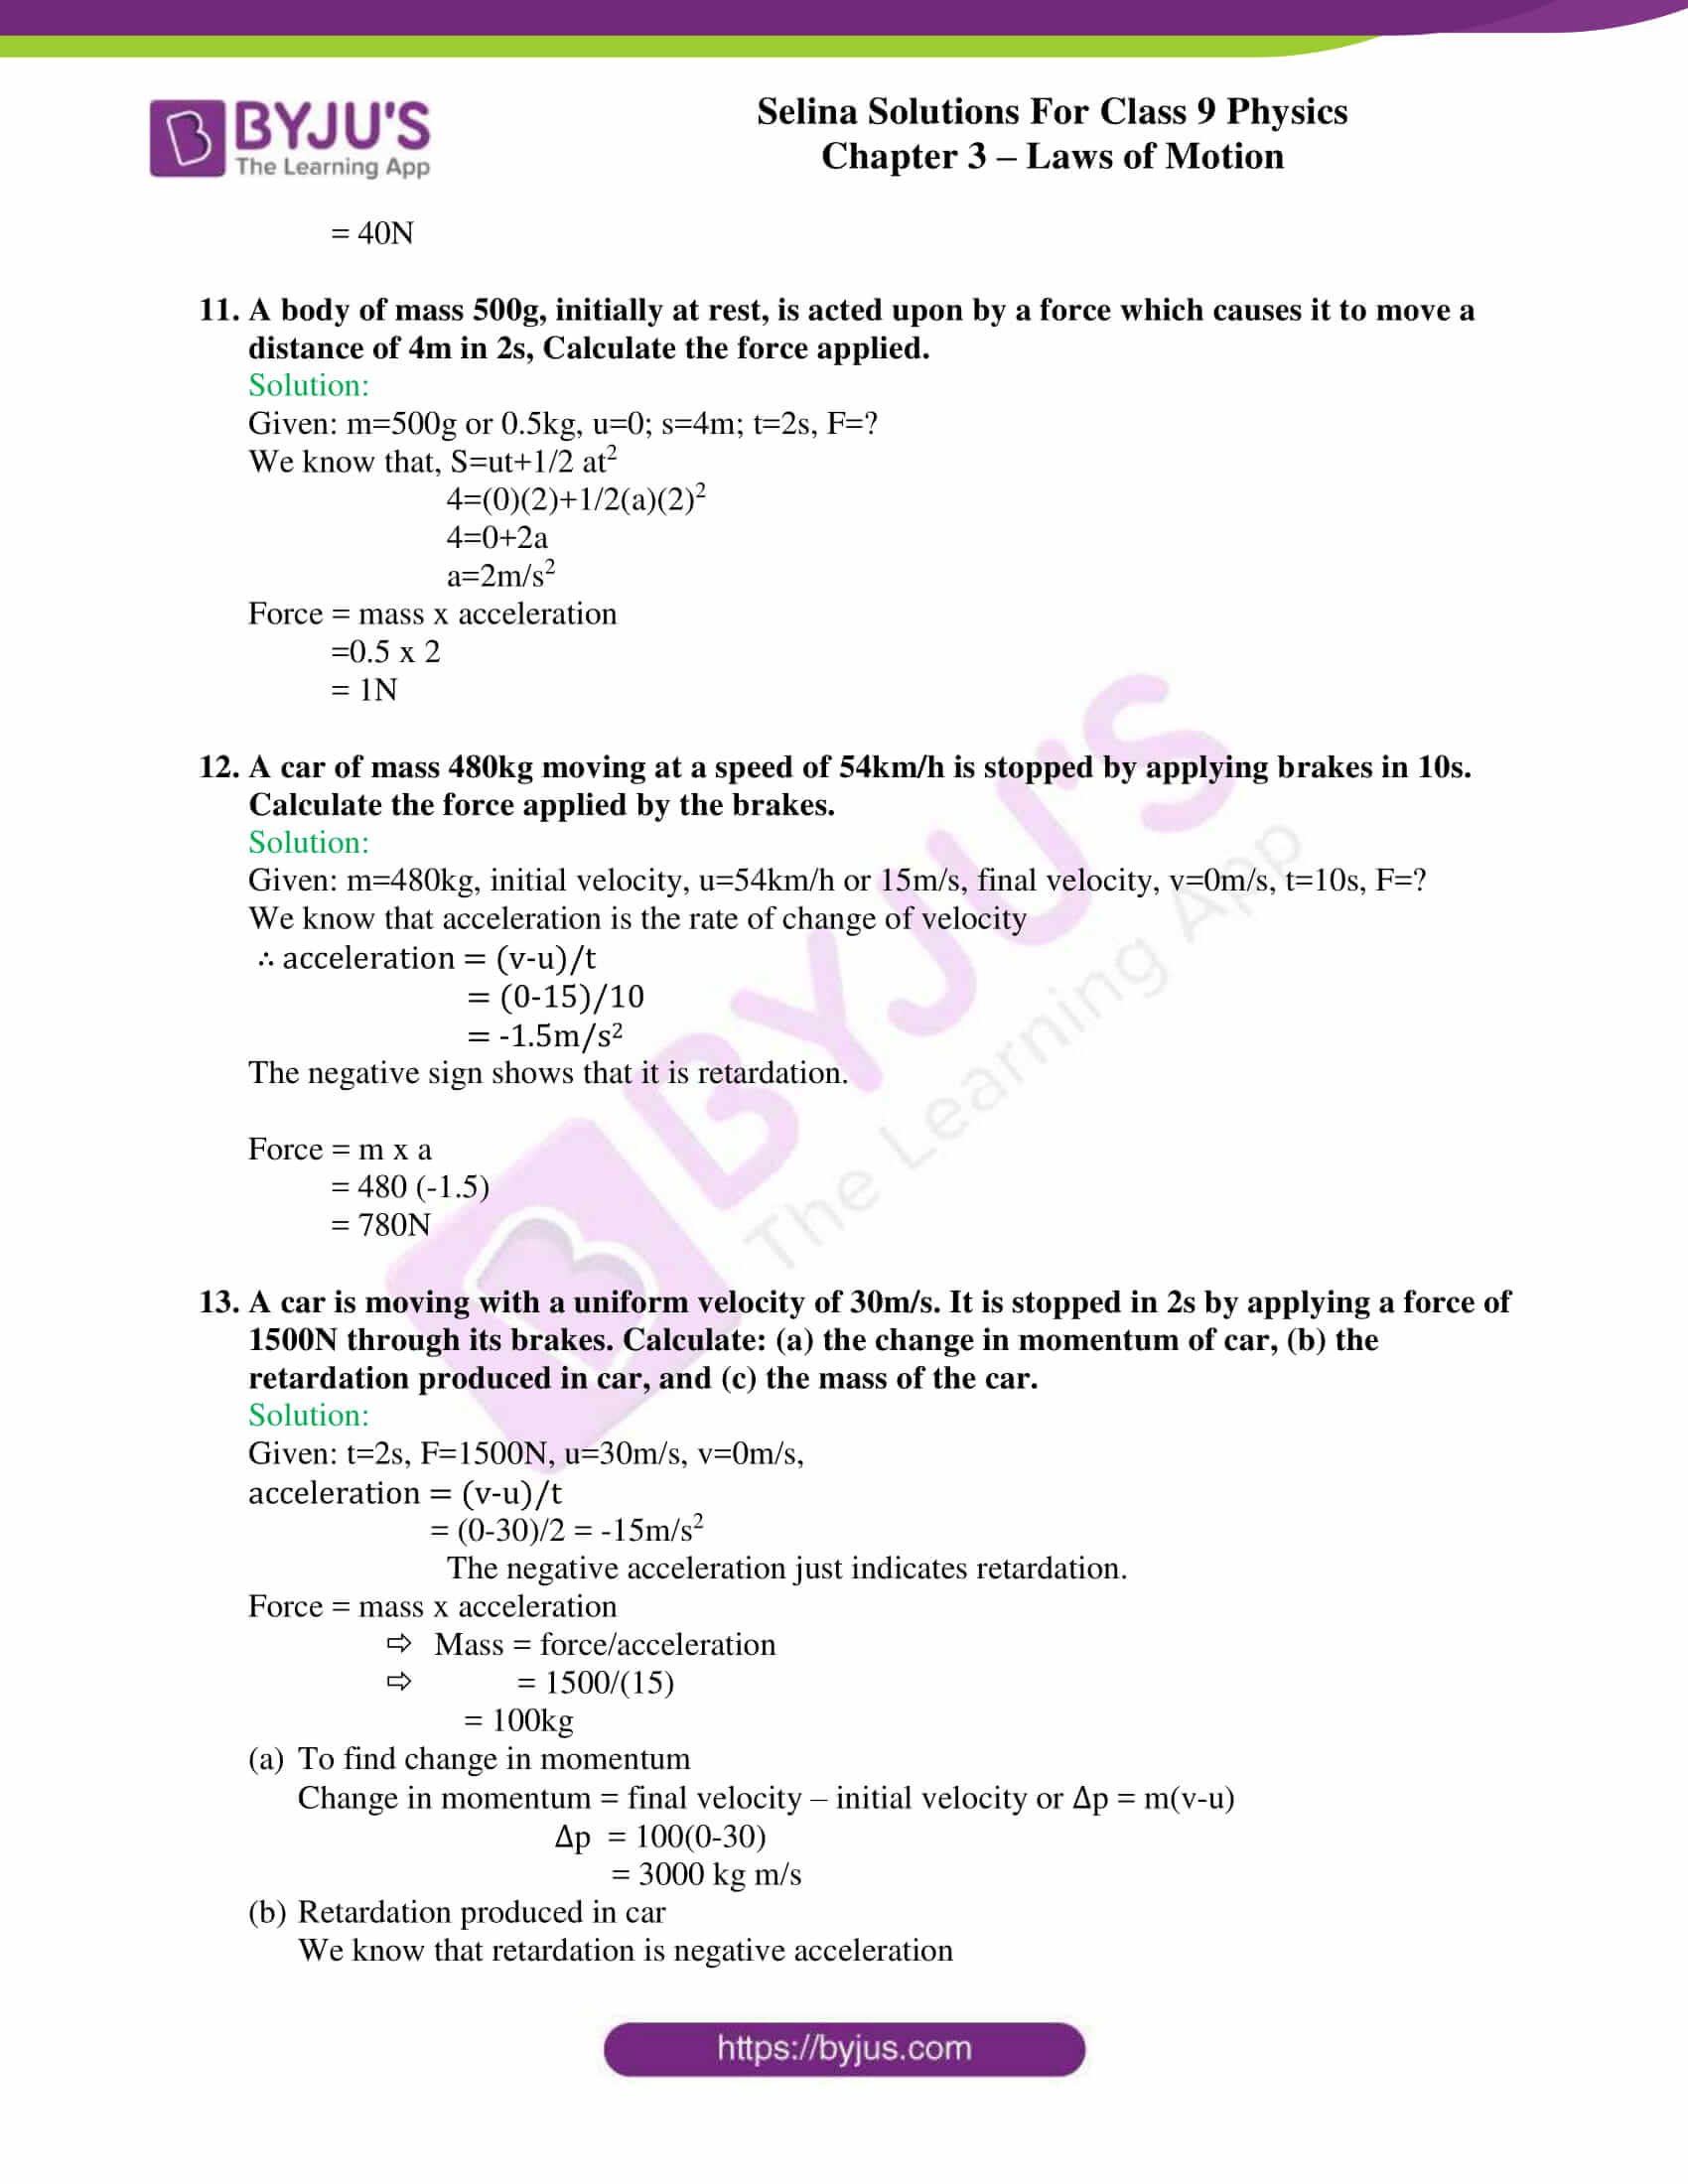 selina solutions class 9 physics chapter 3 Laws of Motion part 19